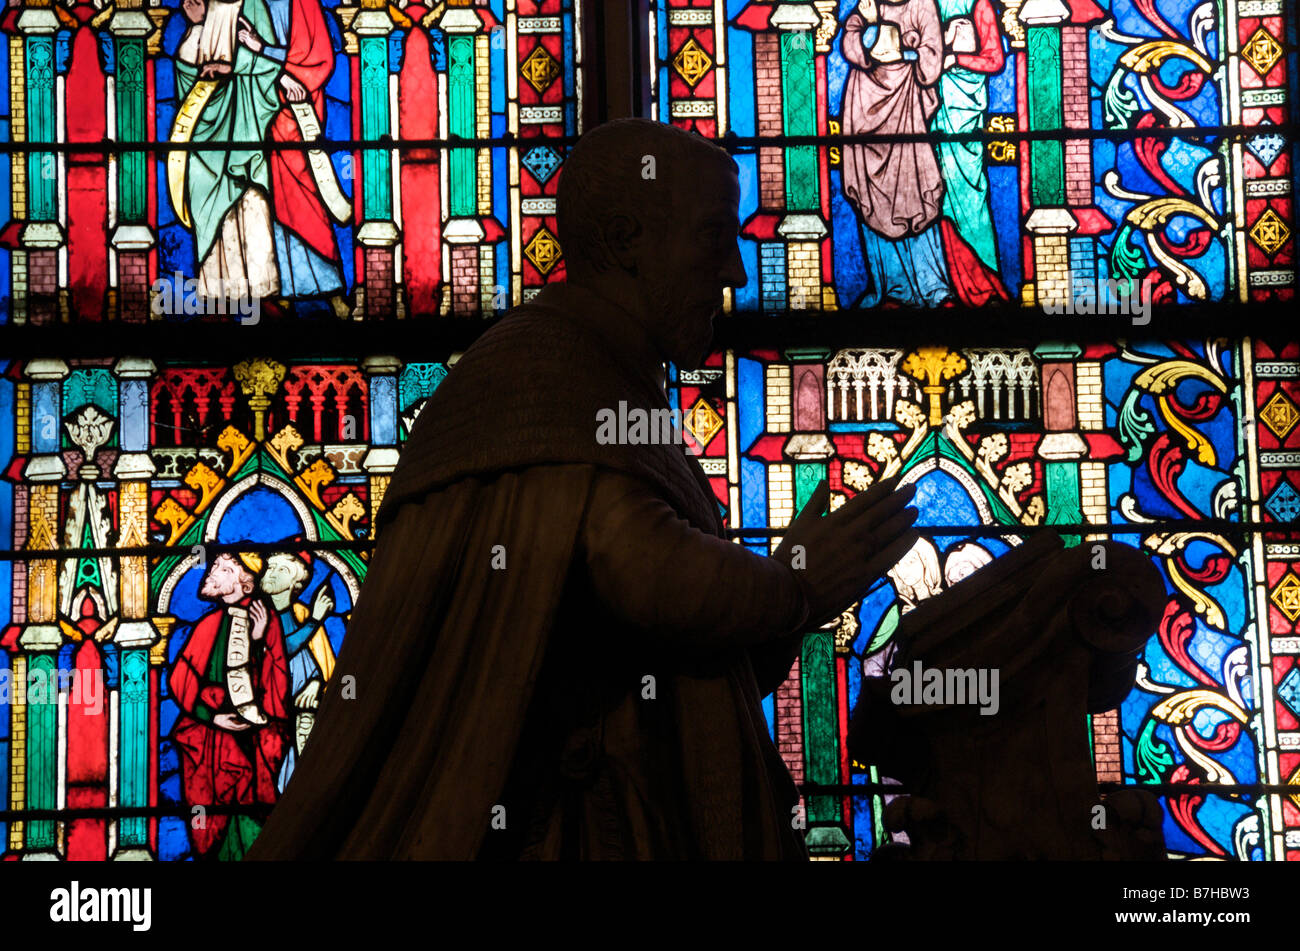 Stained glass window of Notre Dame de Paris. France - Stock Image